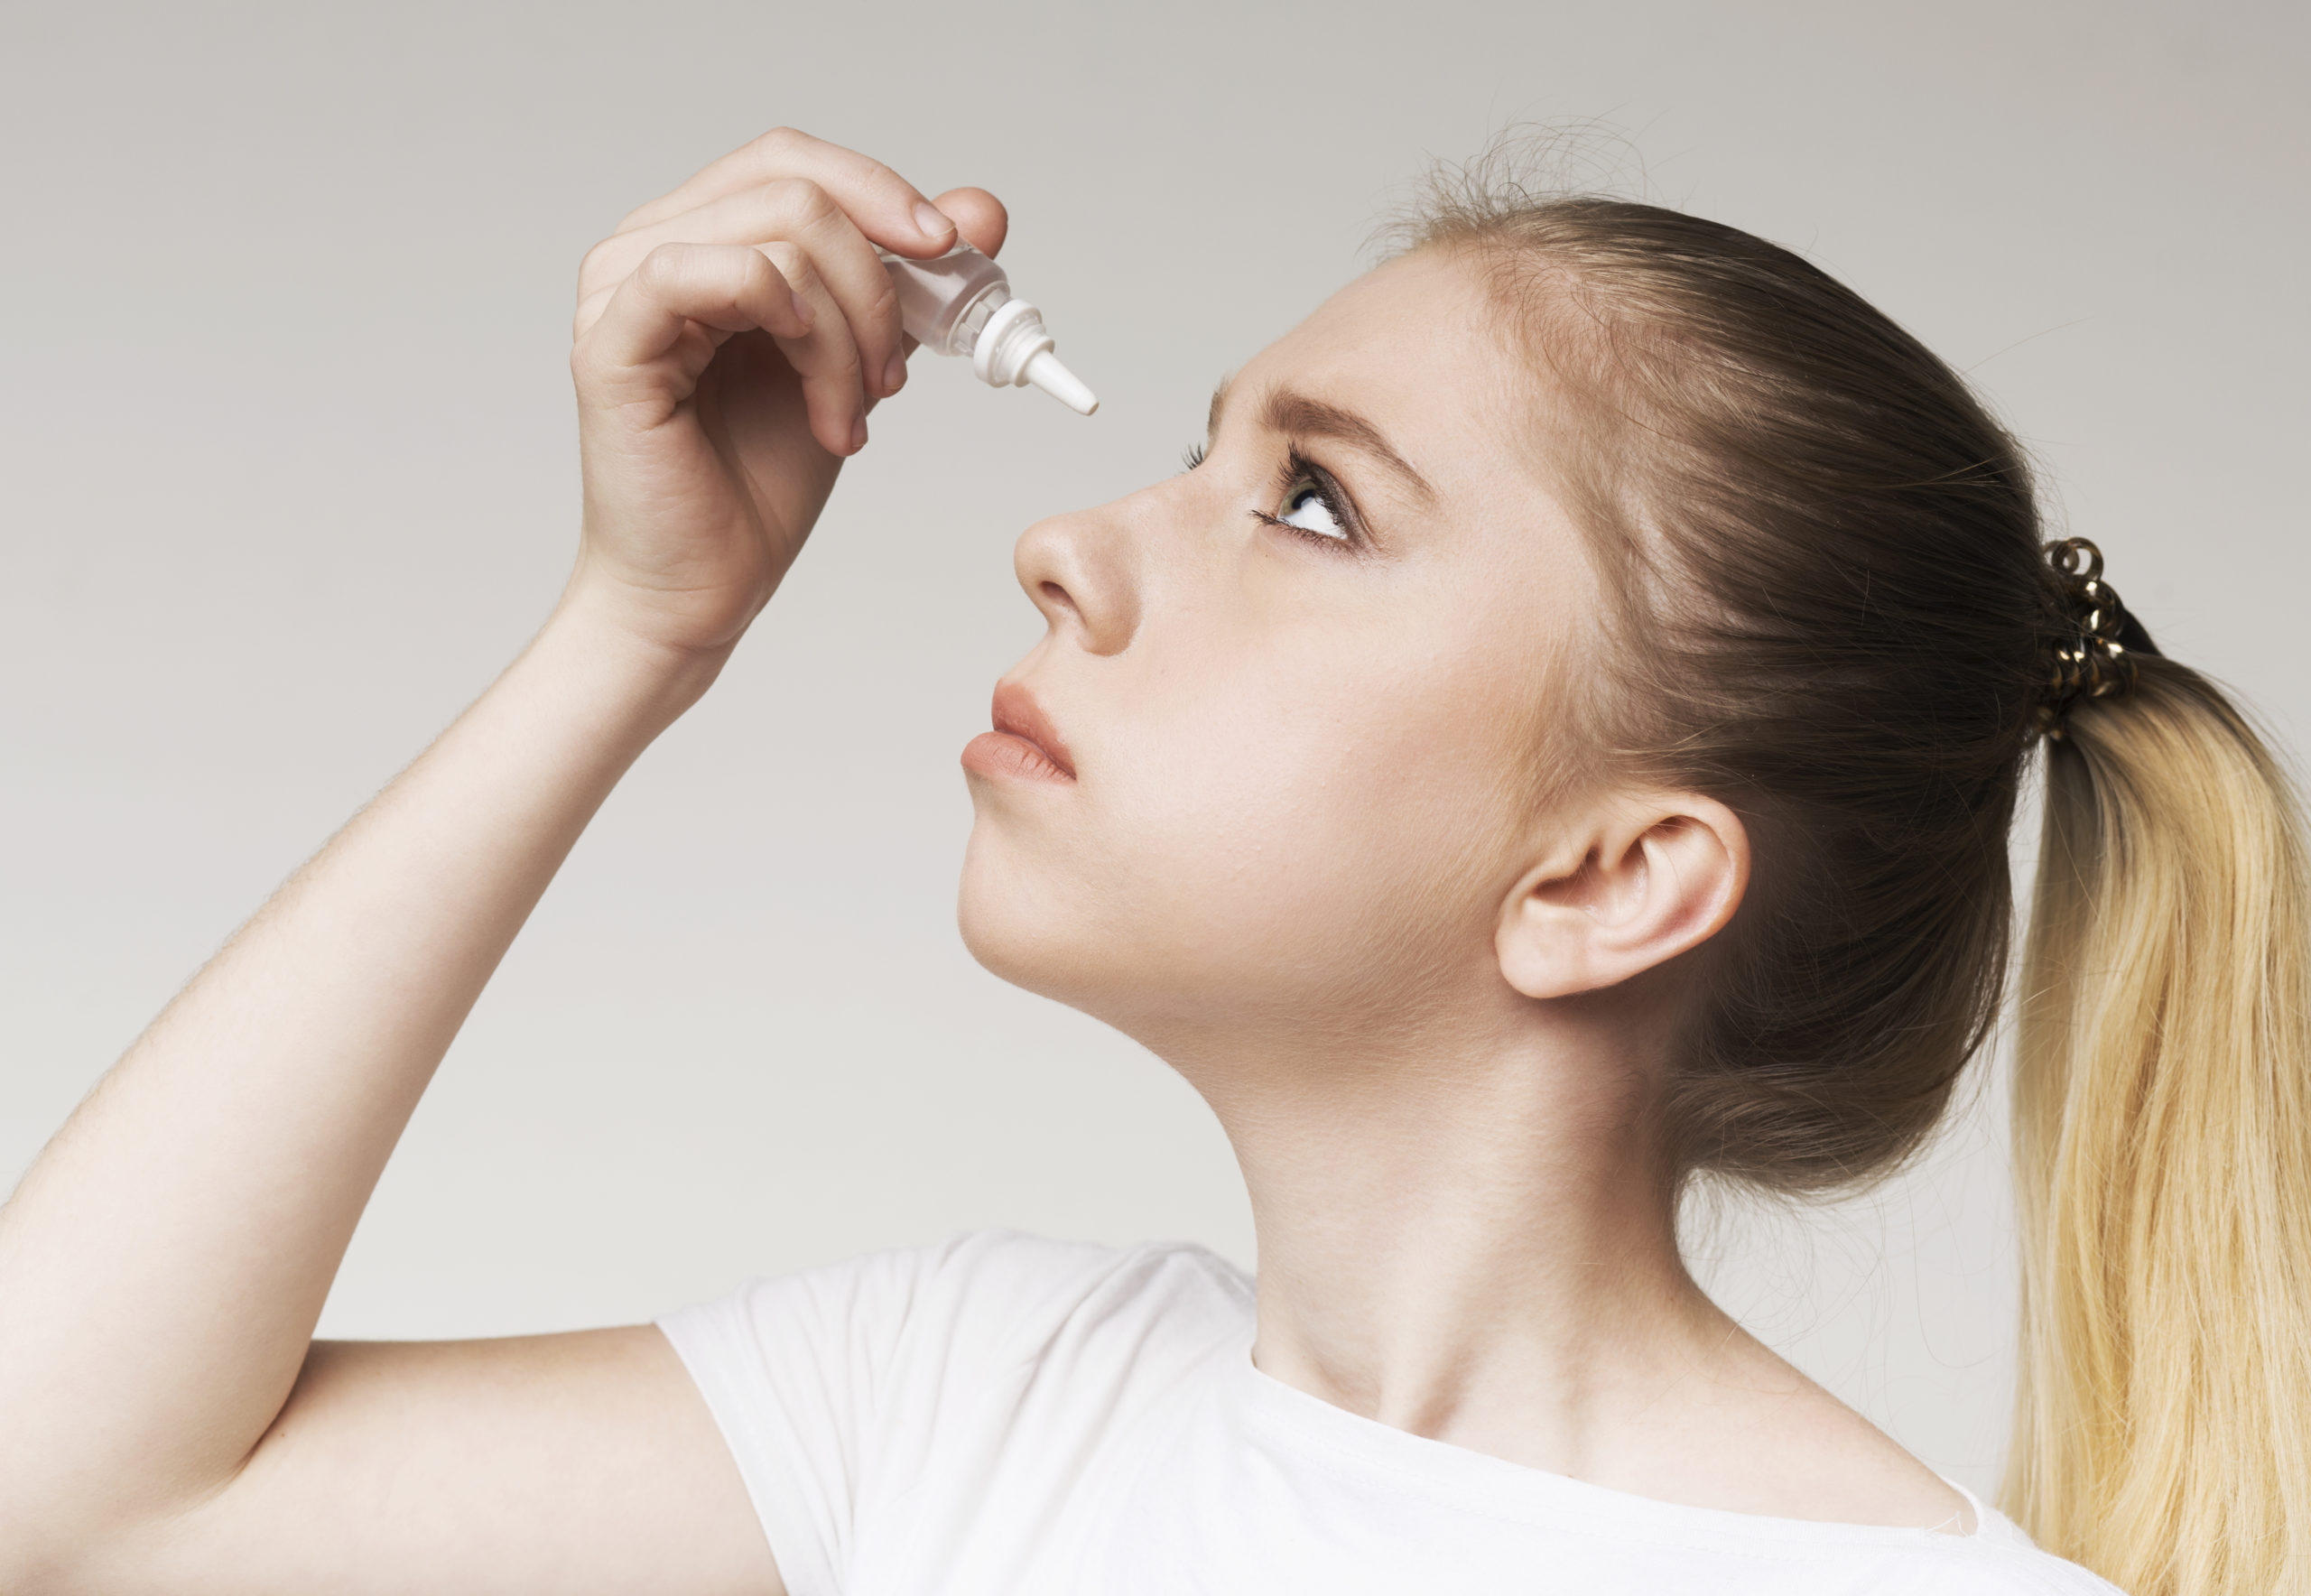 eye drops against dry eyes